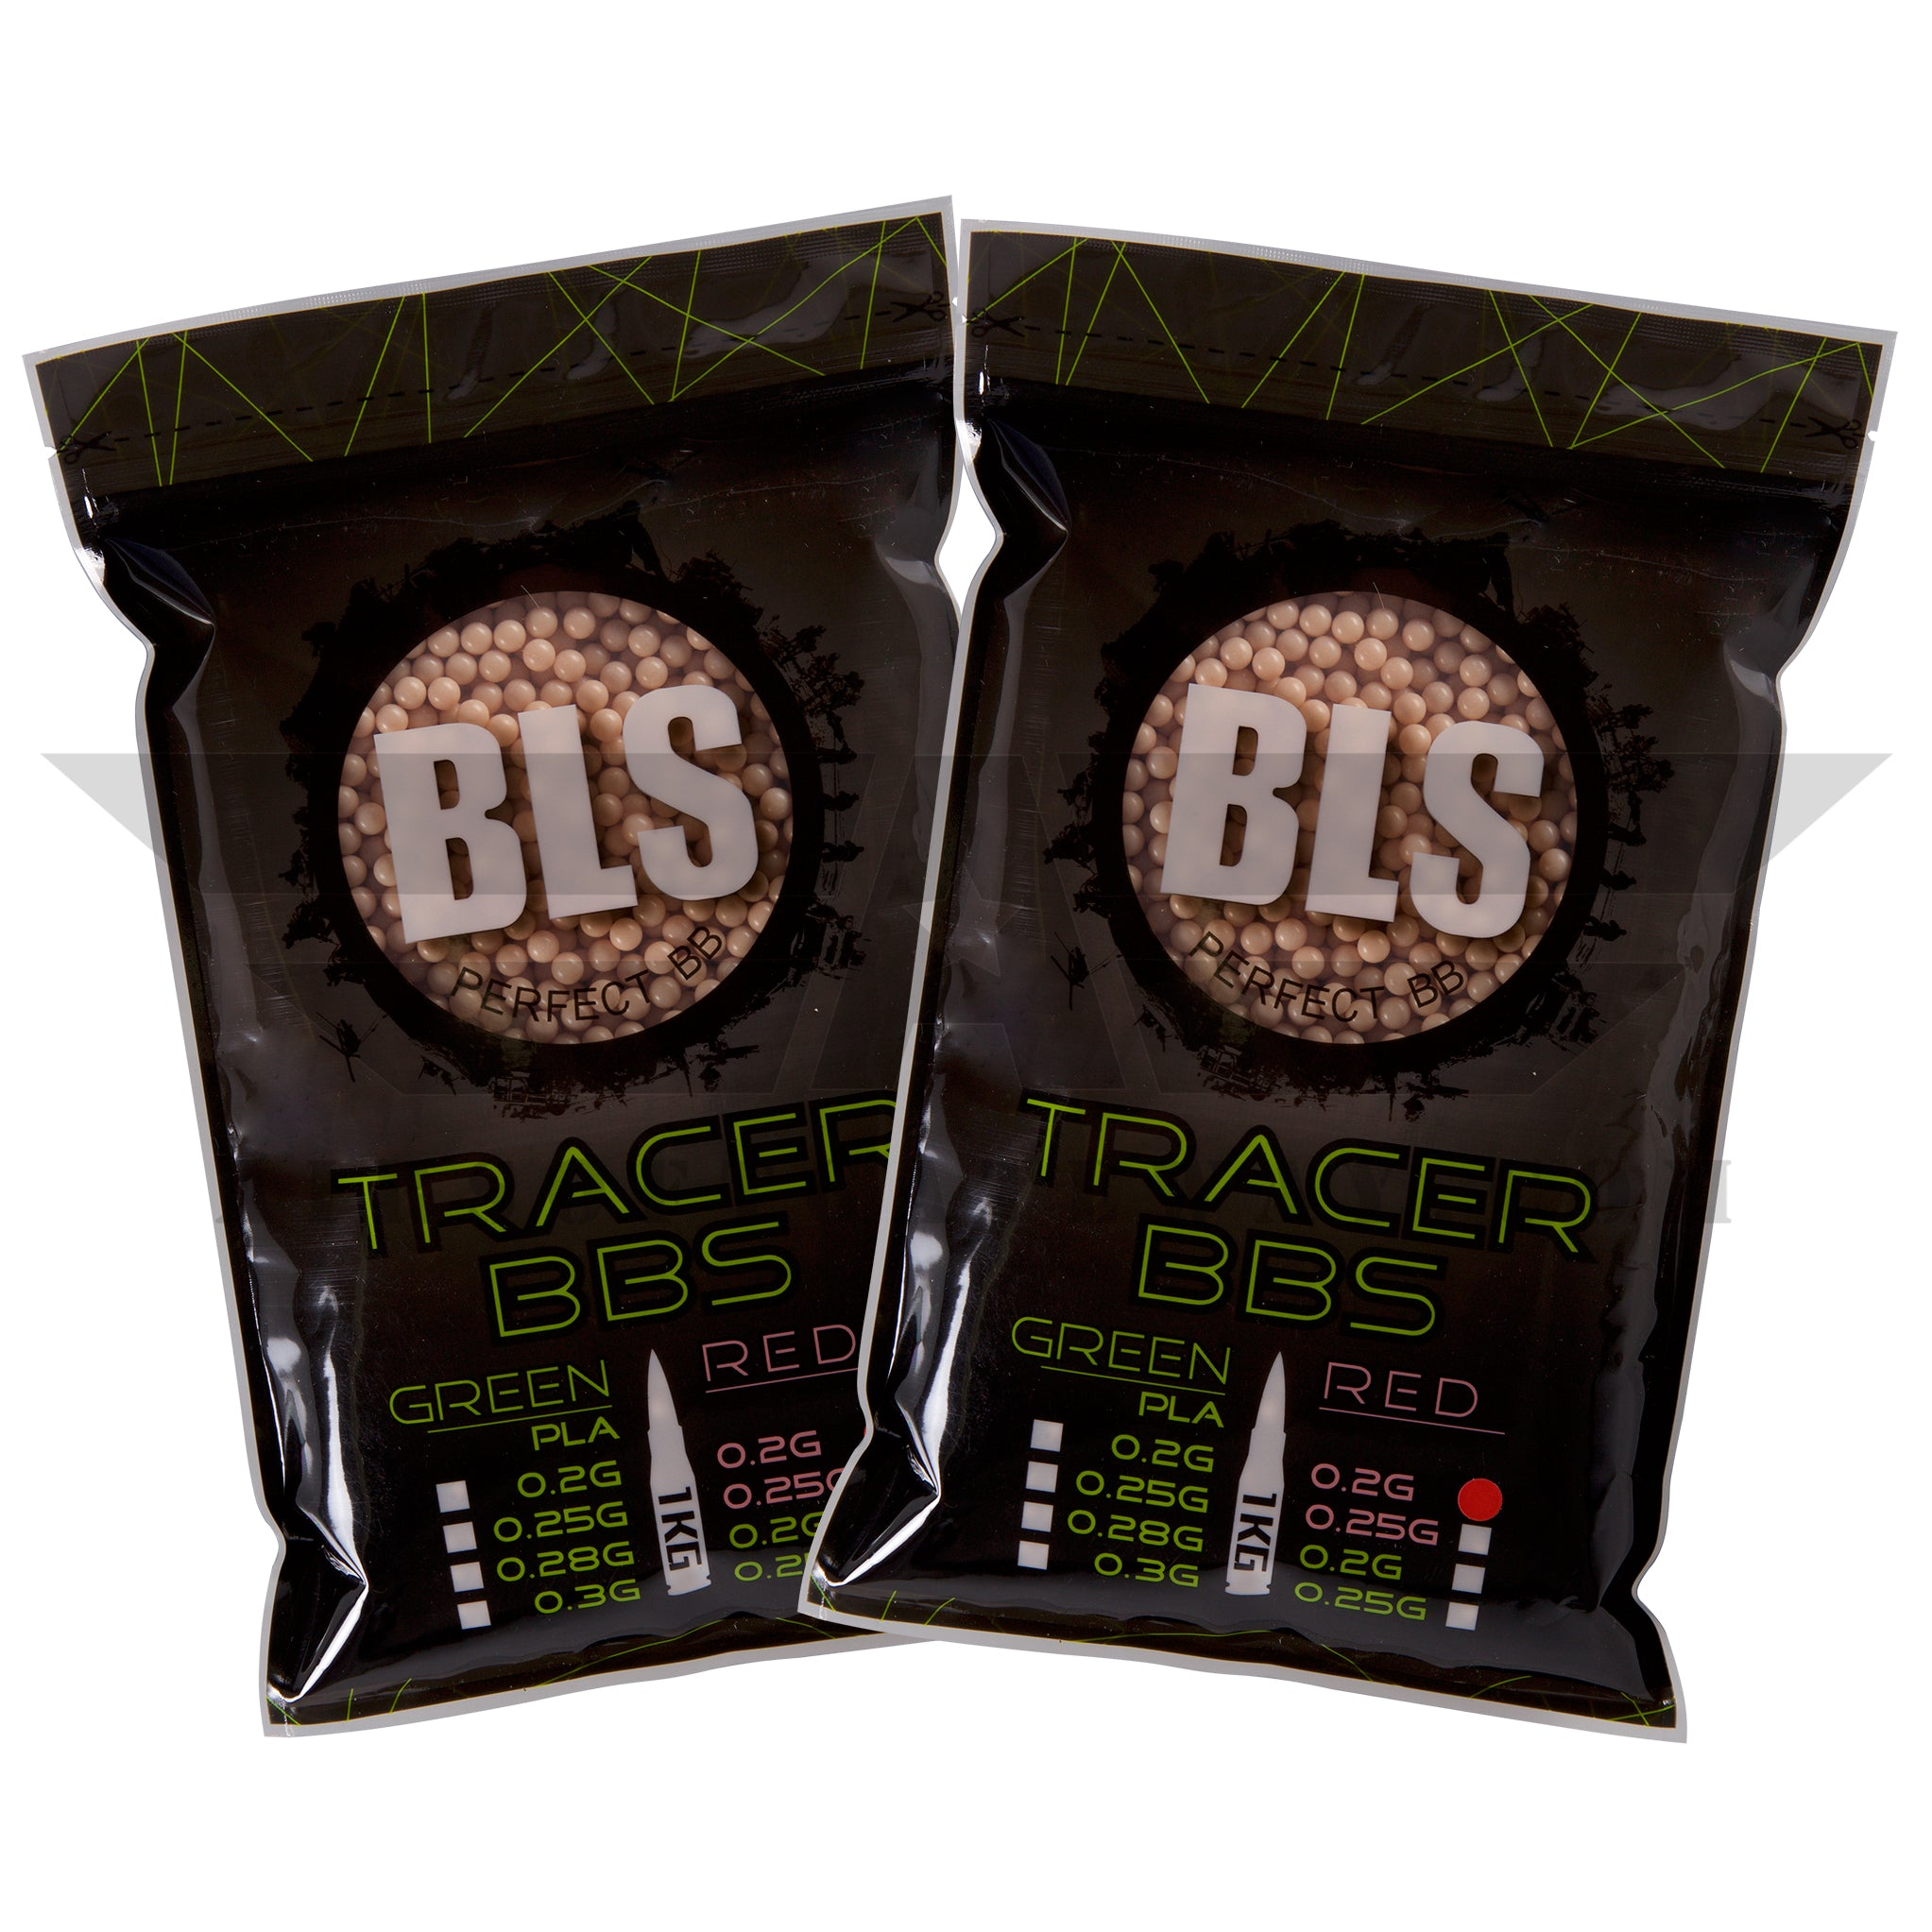 BLS Tracer Precision BBs 5.95mm +- .01mm - .20g - 10000 Total Count - RED - (2 Pack) - airsoftgateway.com